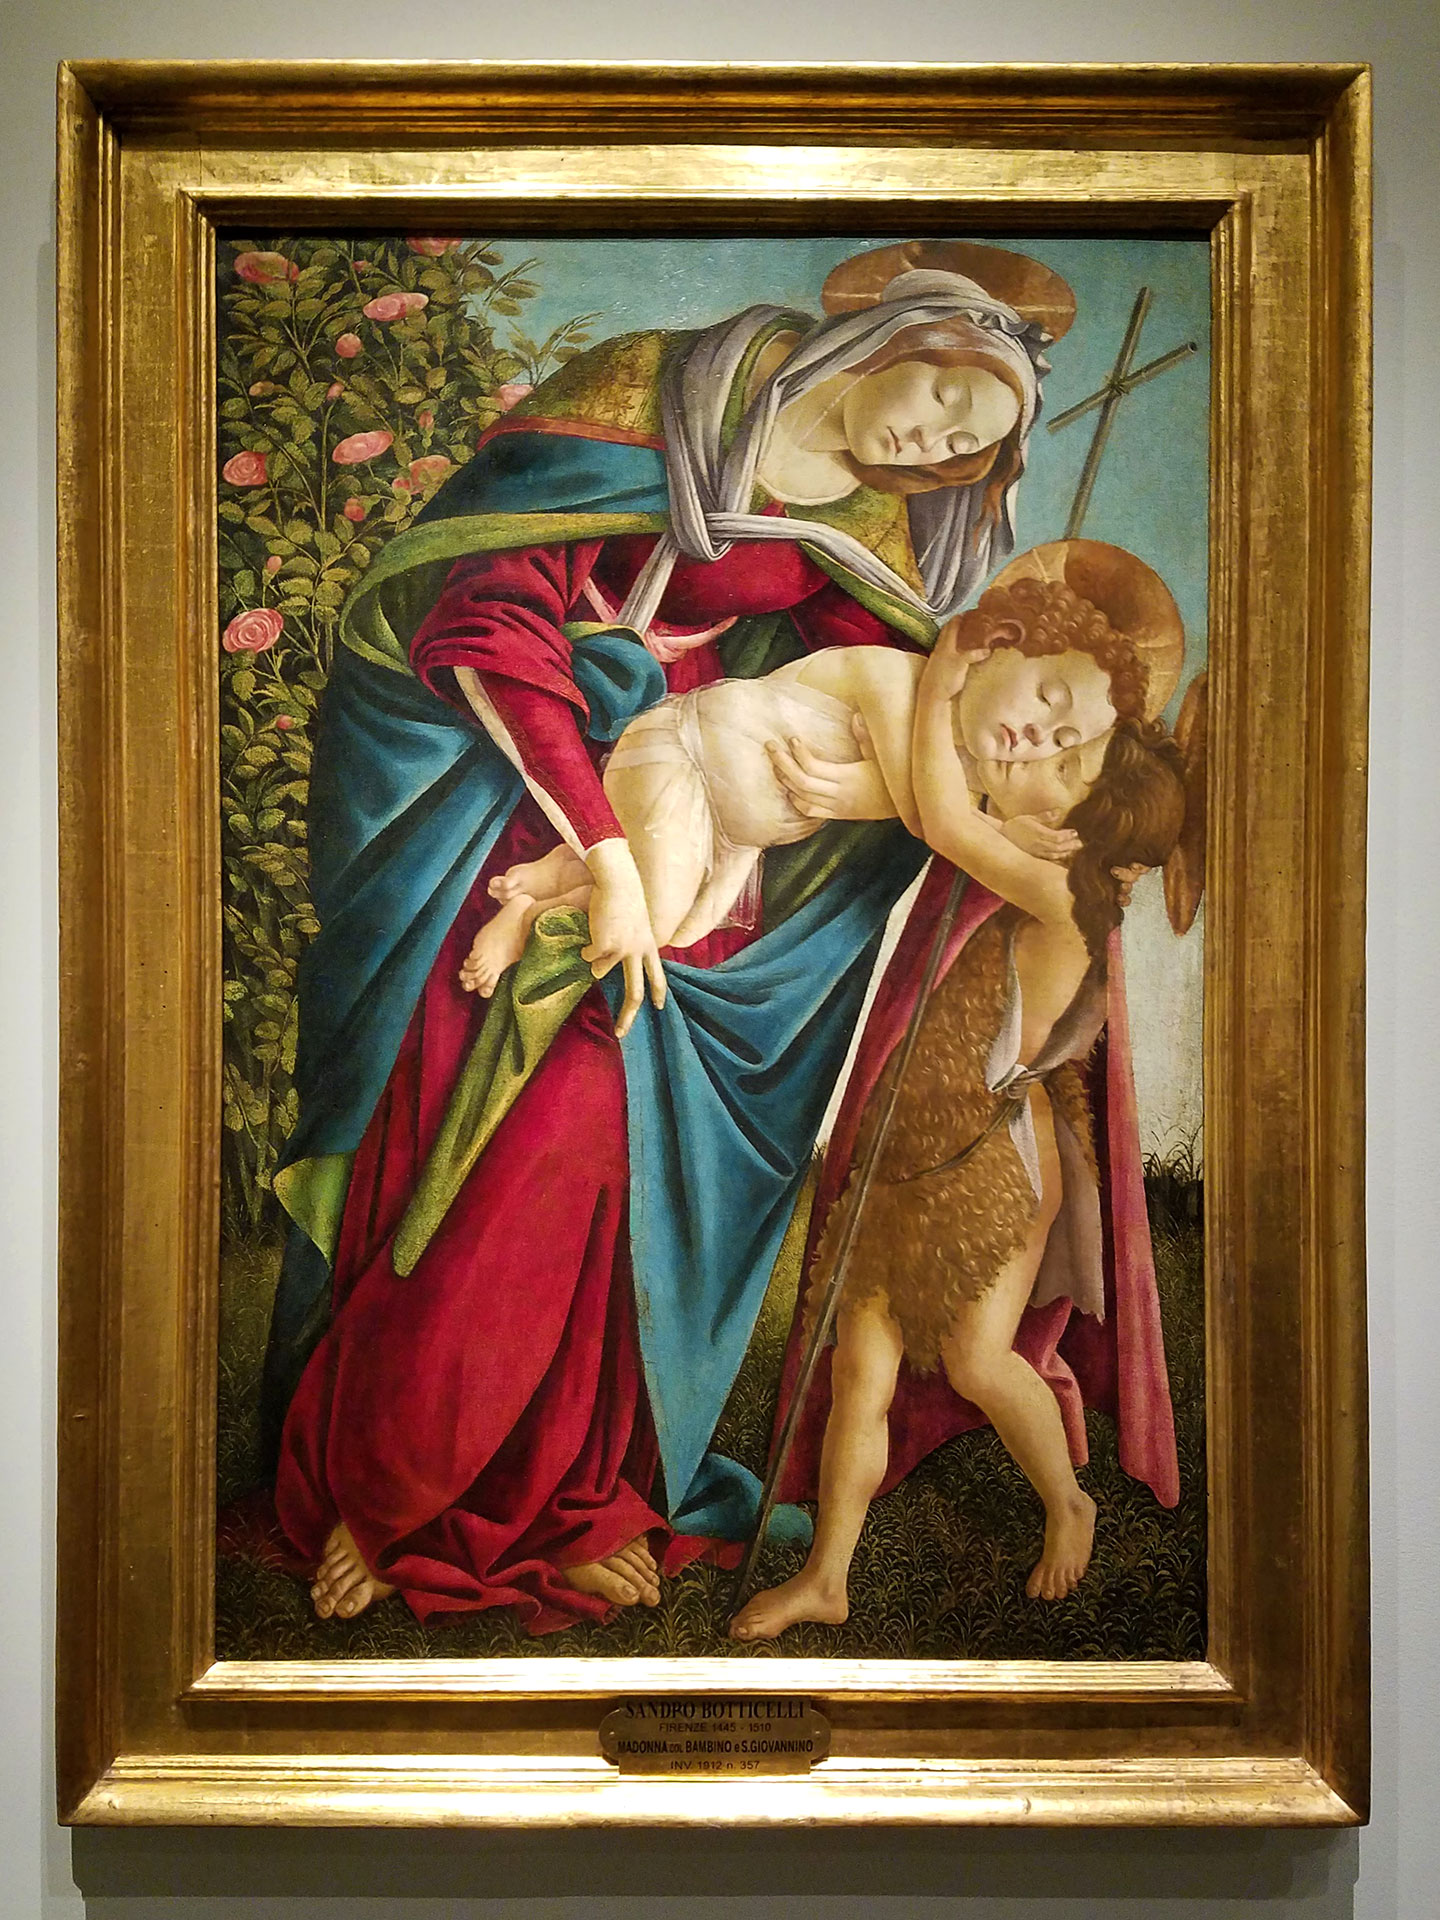 Botticelli - Virgin and Child with the Young Saint John the Baptist, 1505